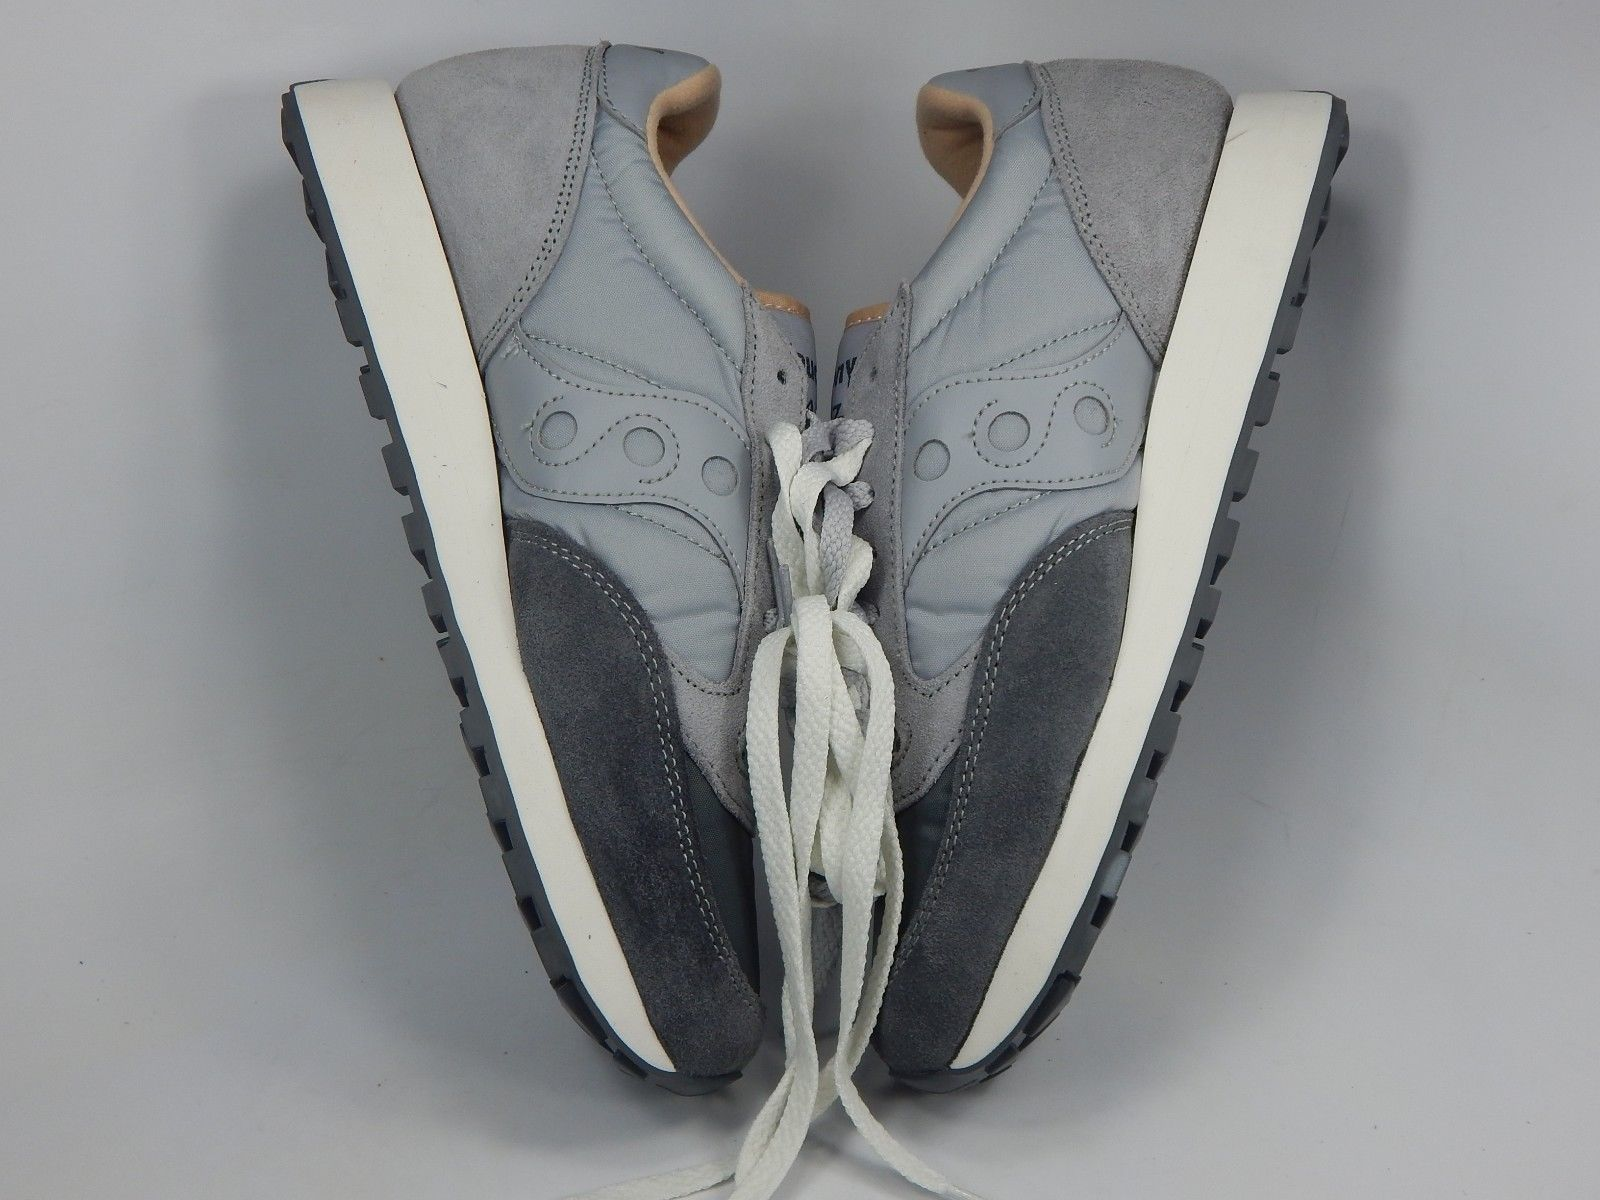 Saucony Jazz Original Running Shoes Men's Size US 9 M (D) EU 42.5 Grey S2044-409